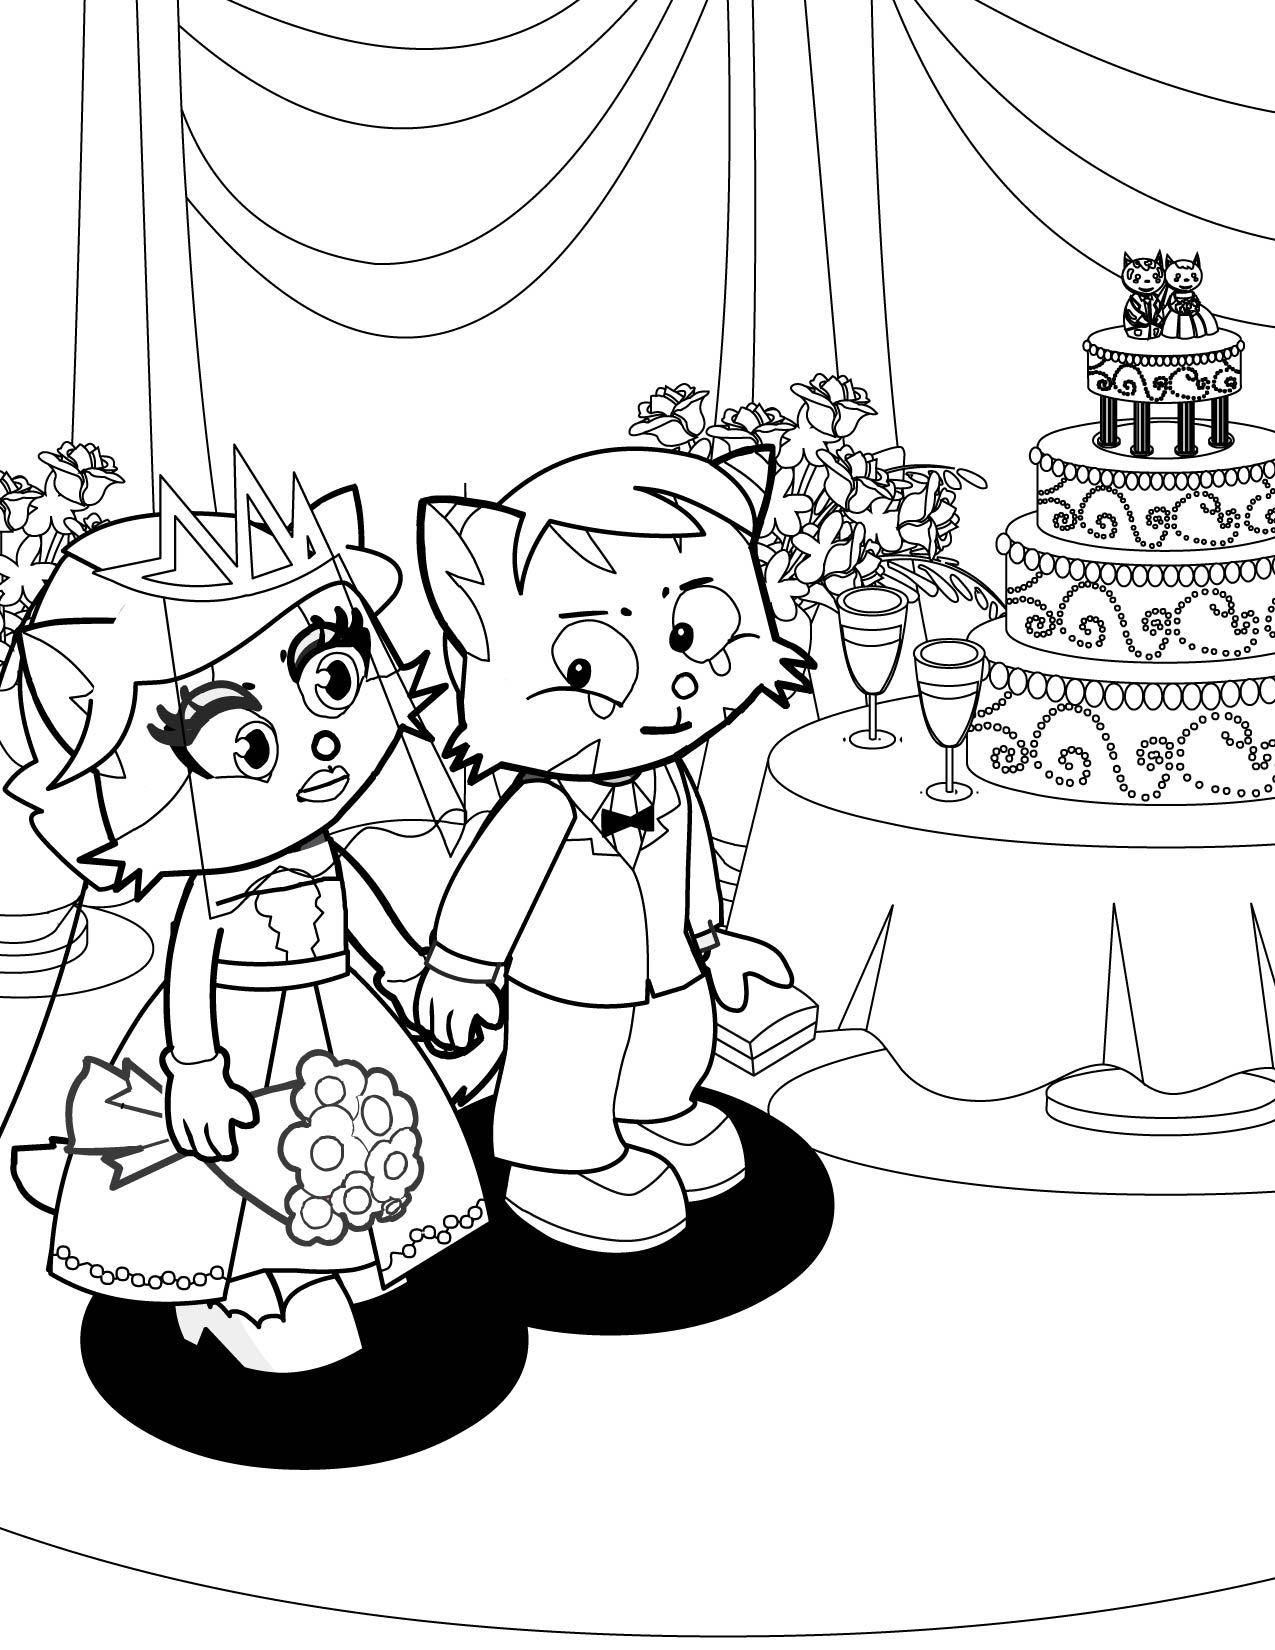 Bride And Groom Coloring Pictures Bltidm